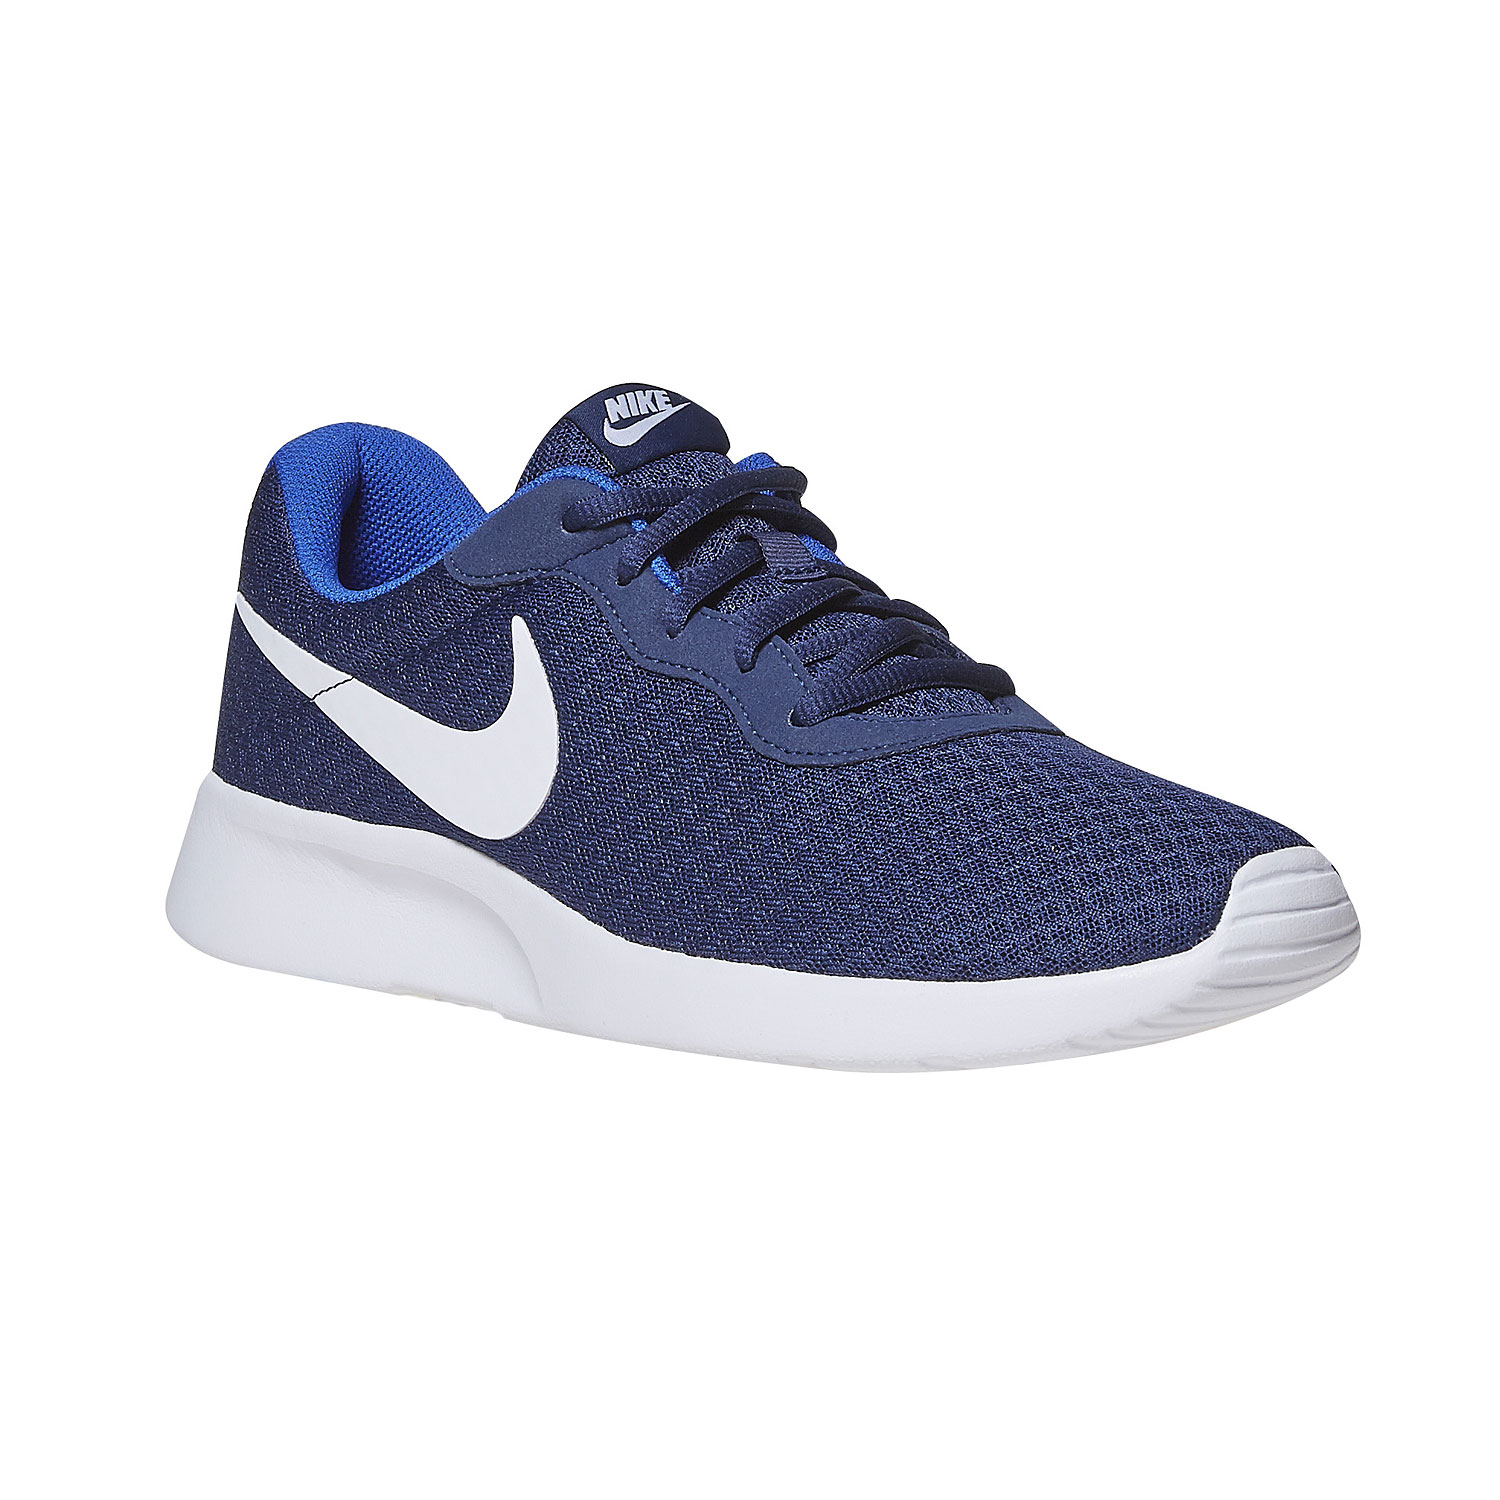 Nike Men s sports sneakers - All Shoes  f12df4101